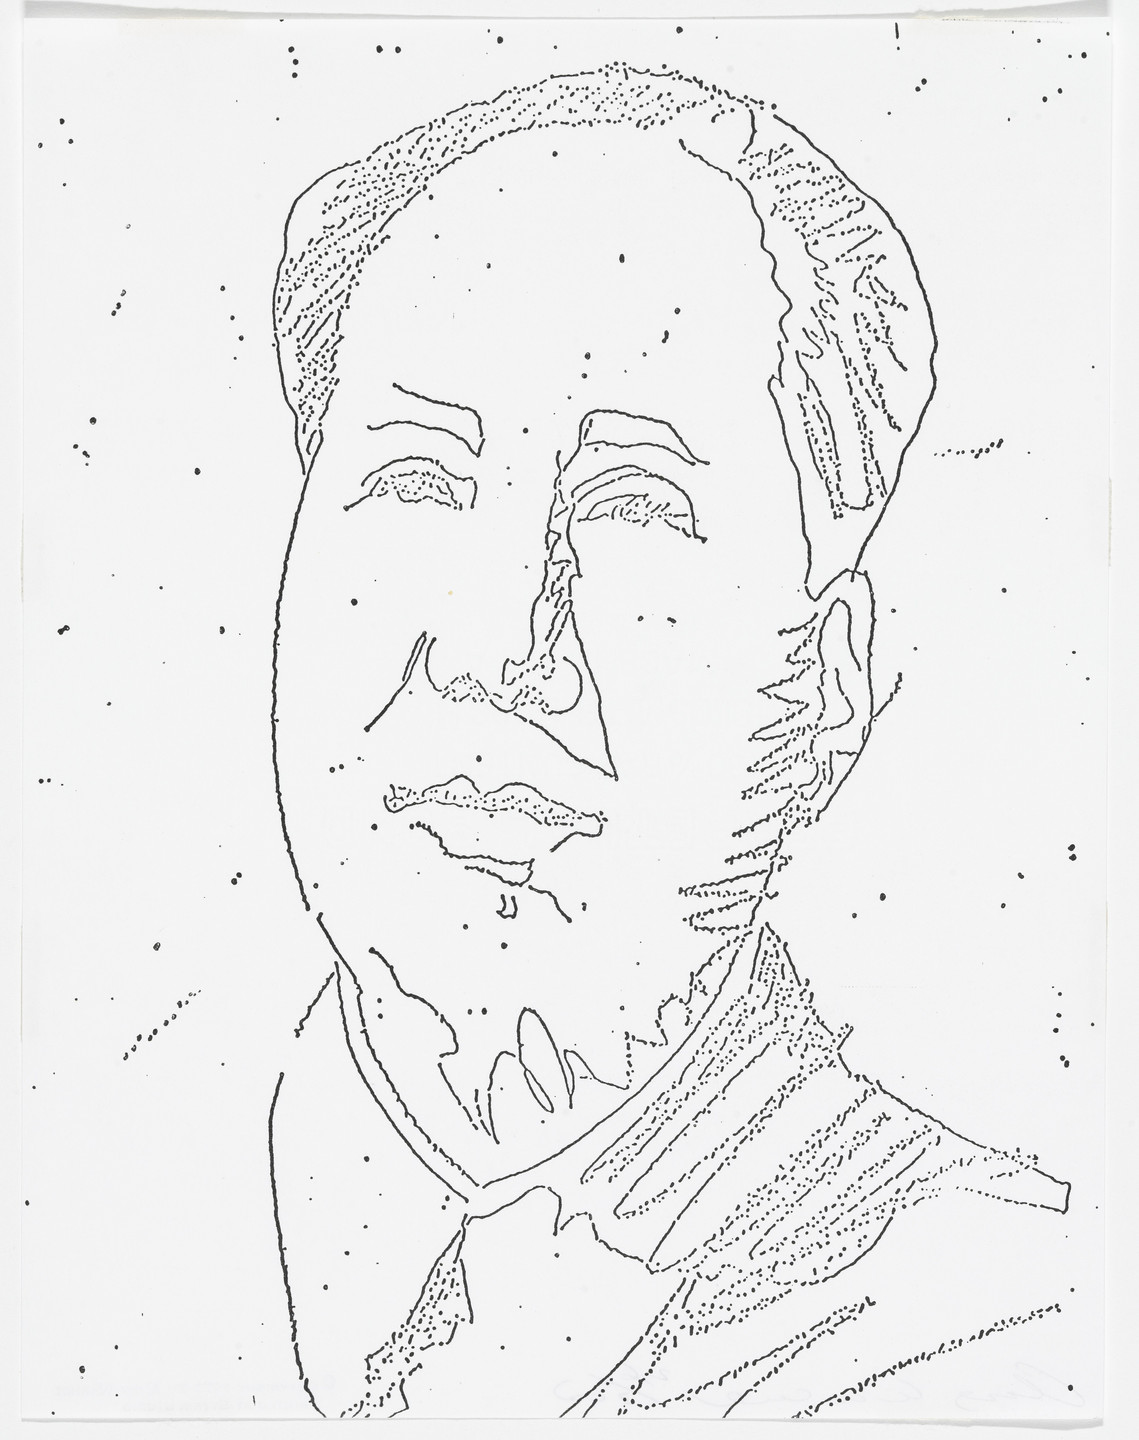 Andy Warhol. Mao from The New York Collection for Stockholm. 1973